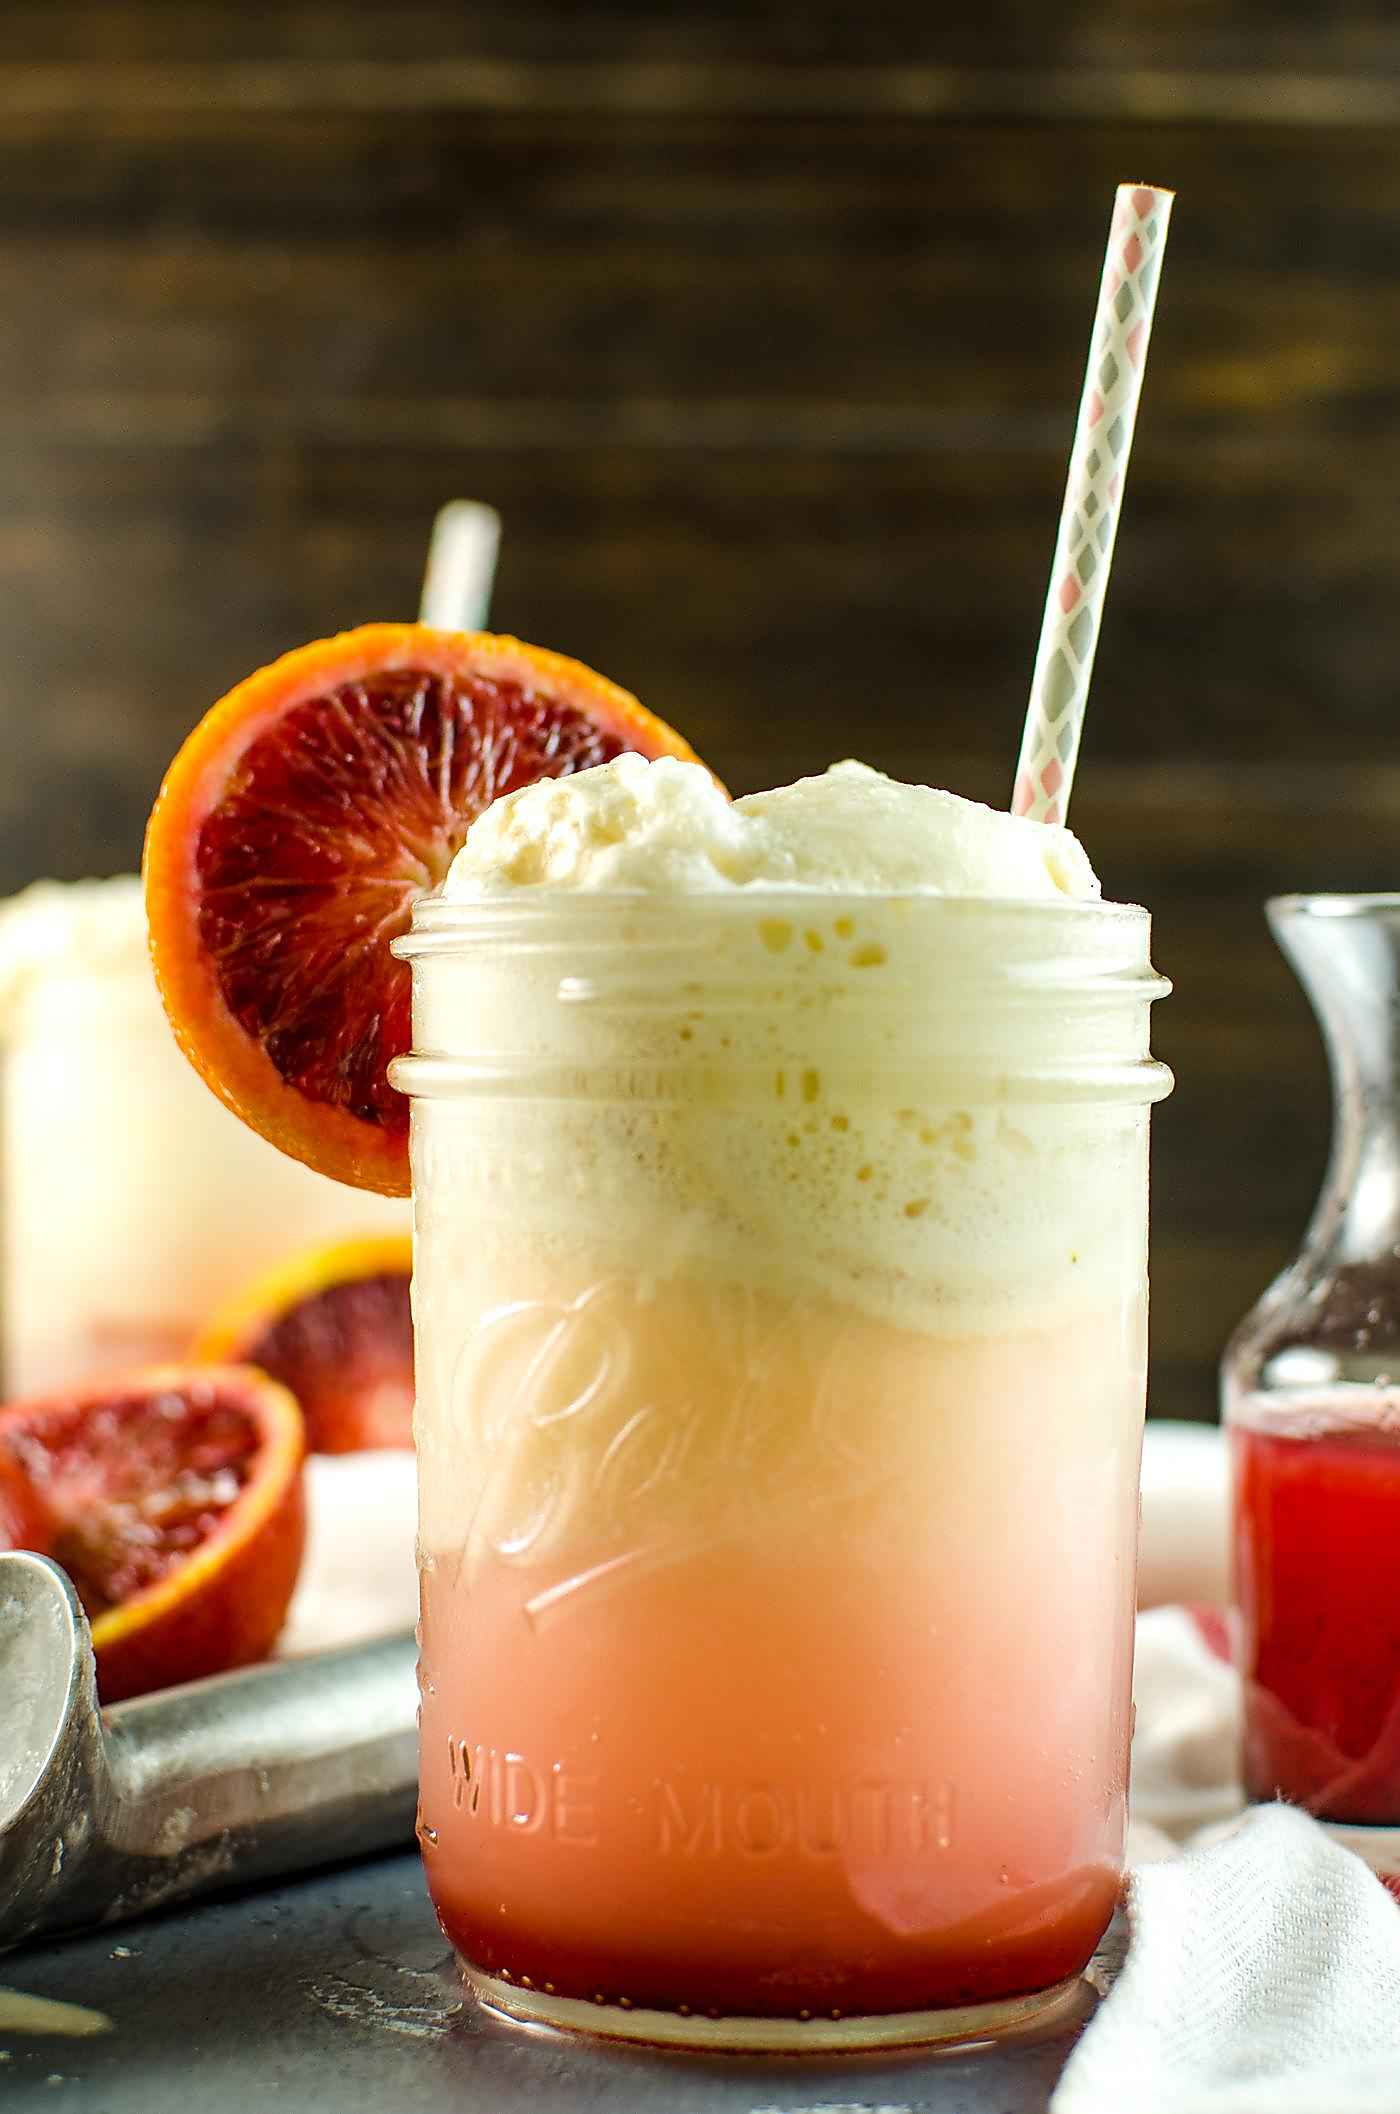 Blood Orange Creamsicle Soda Float - Creamy, citrusy, sweet ...